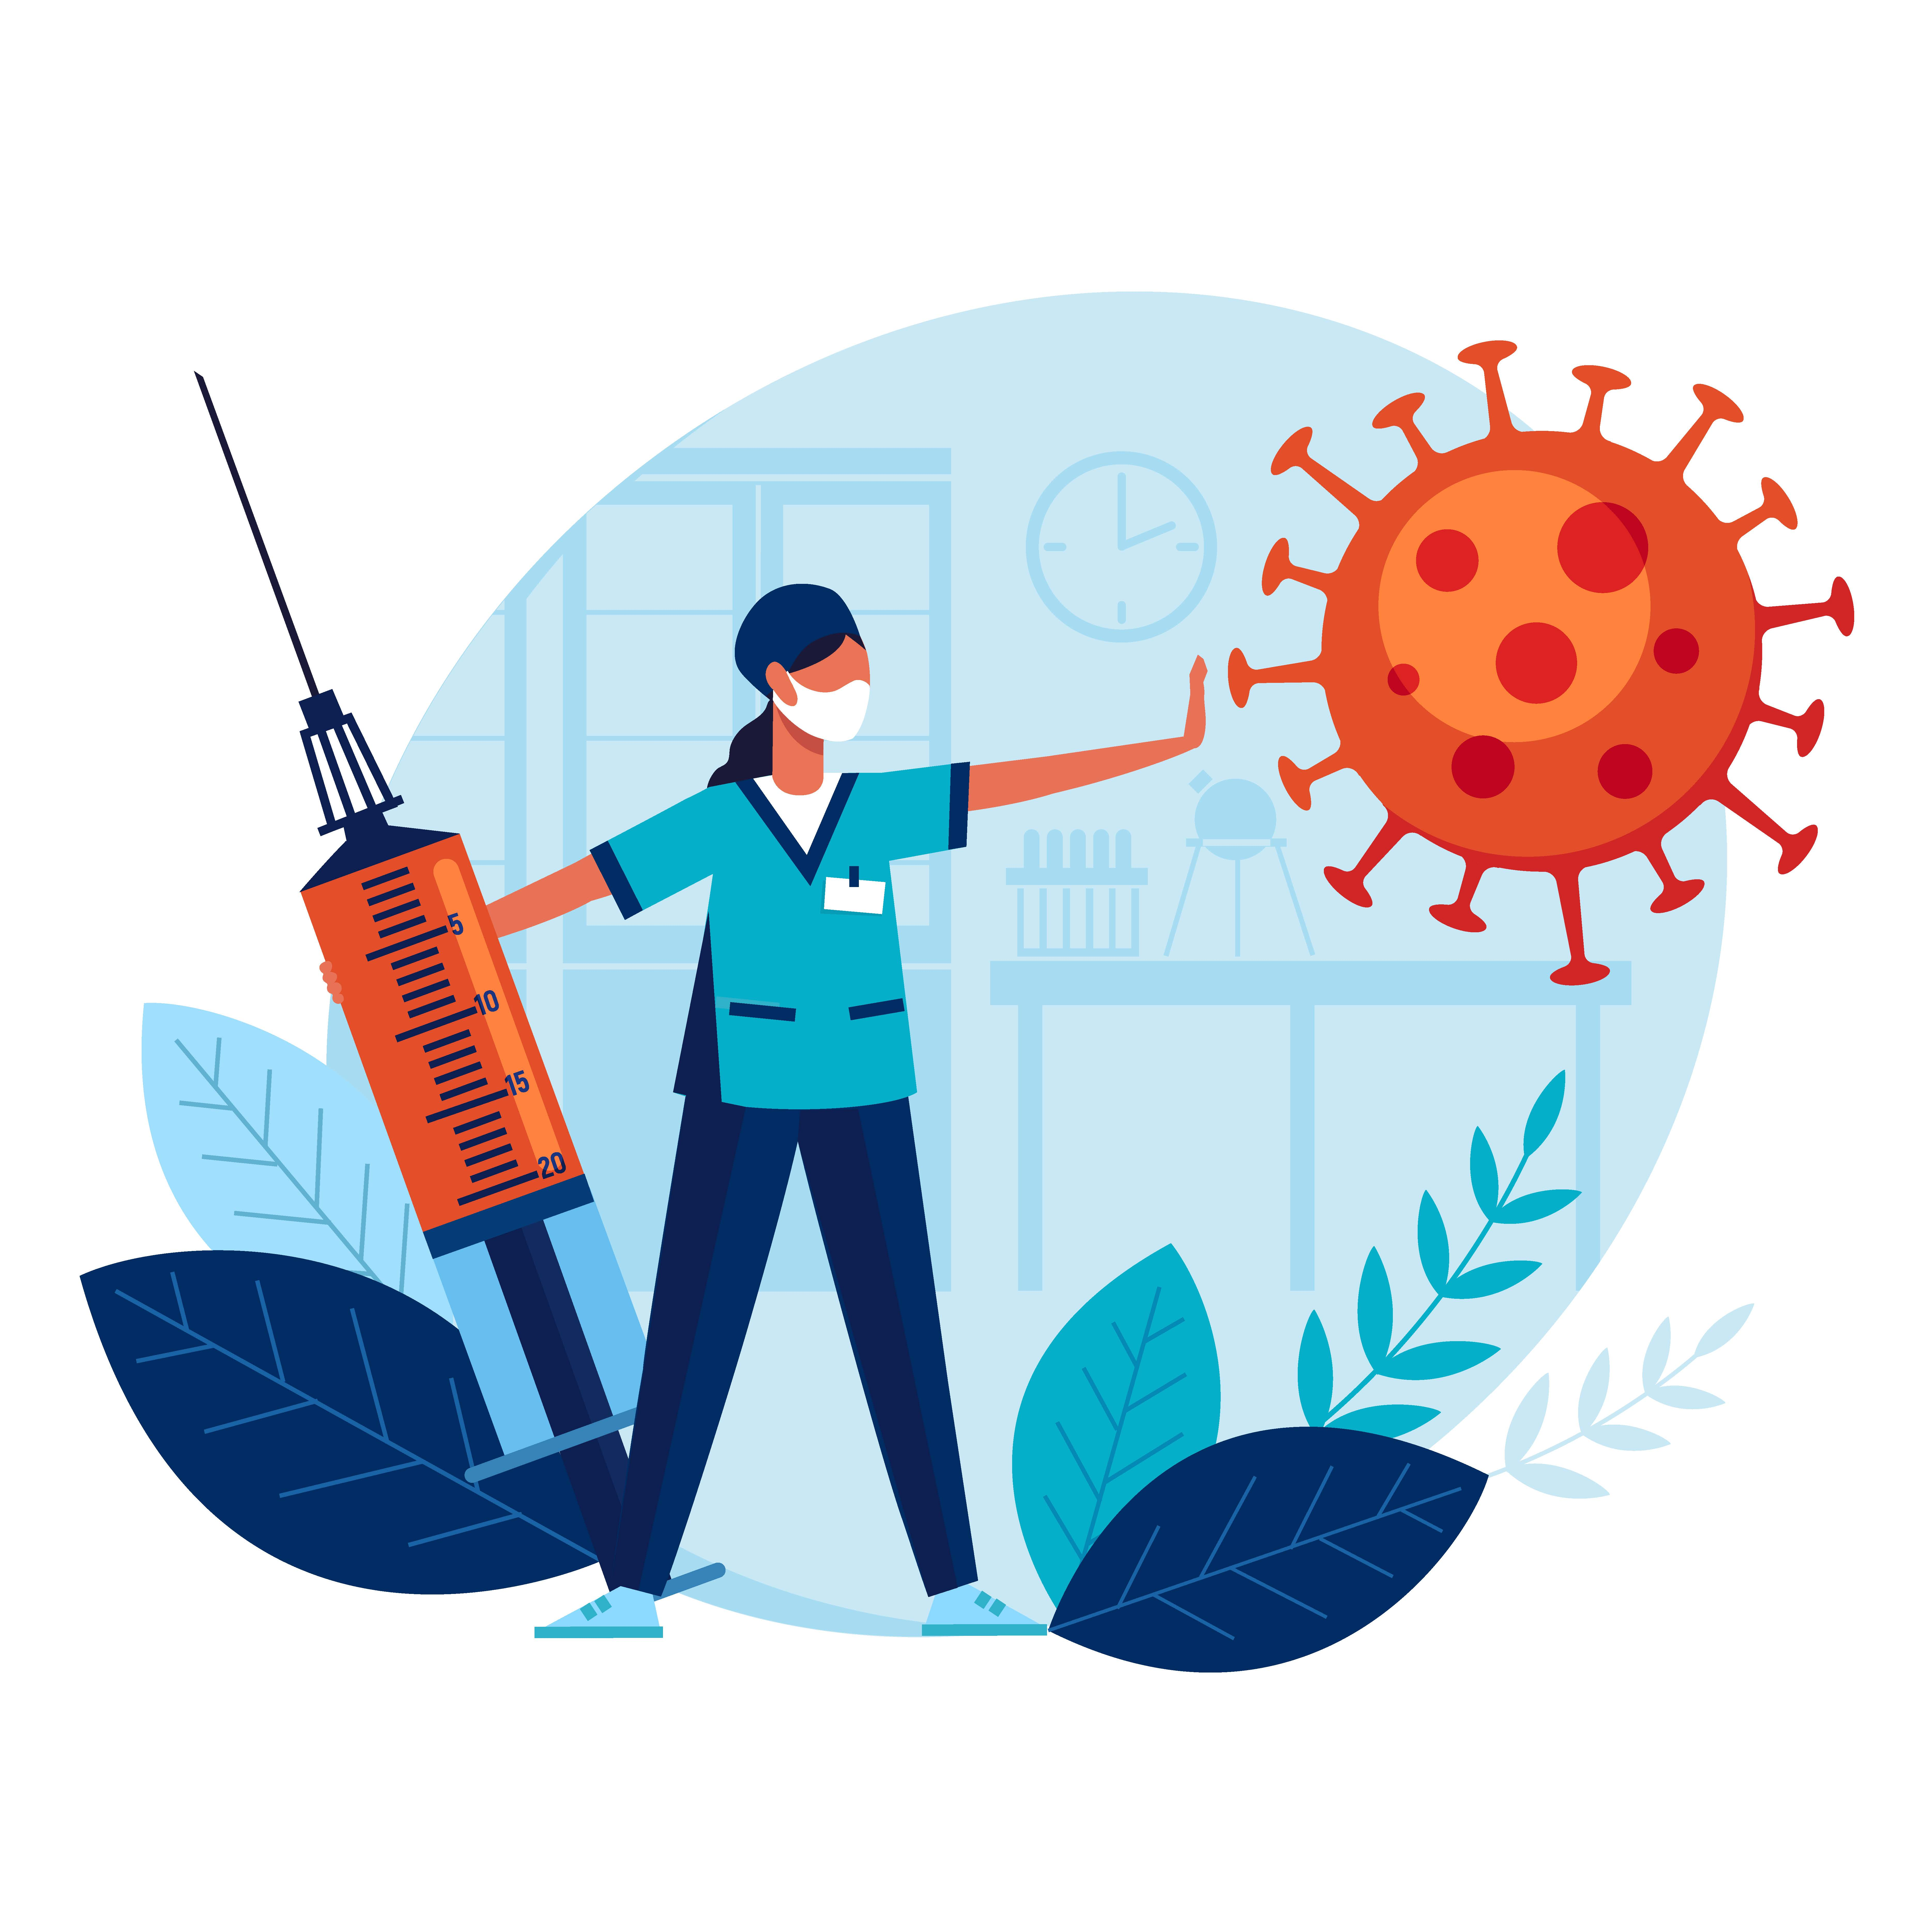 Automate COVID-19 Vaccination Workload